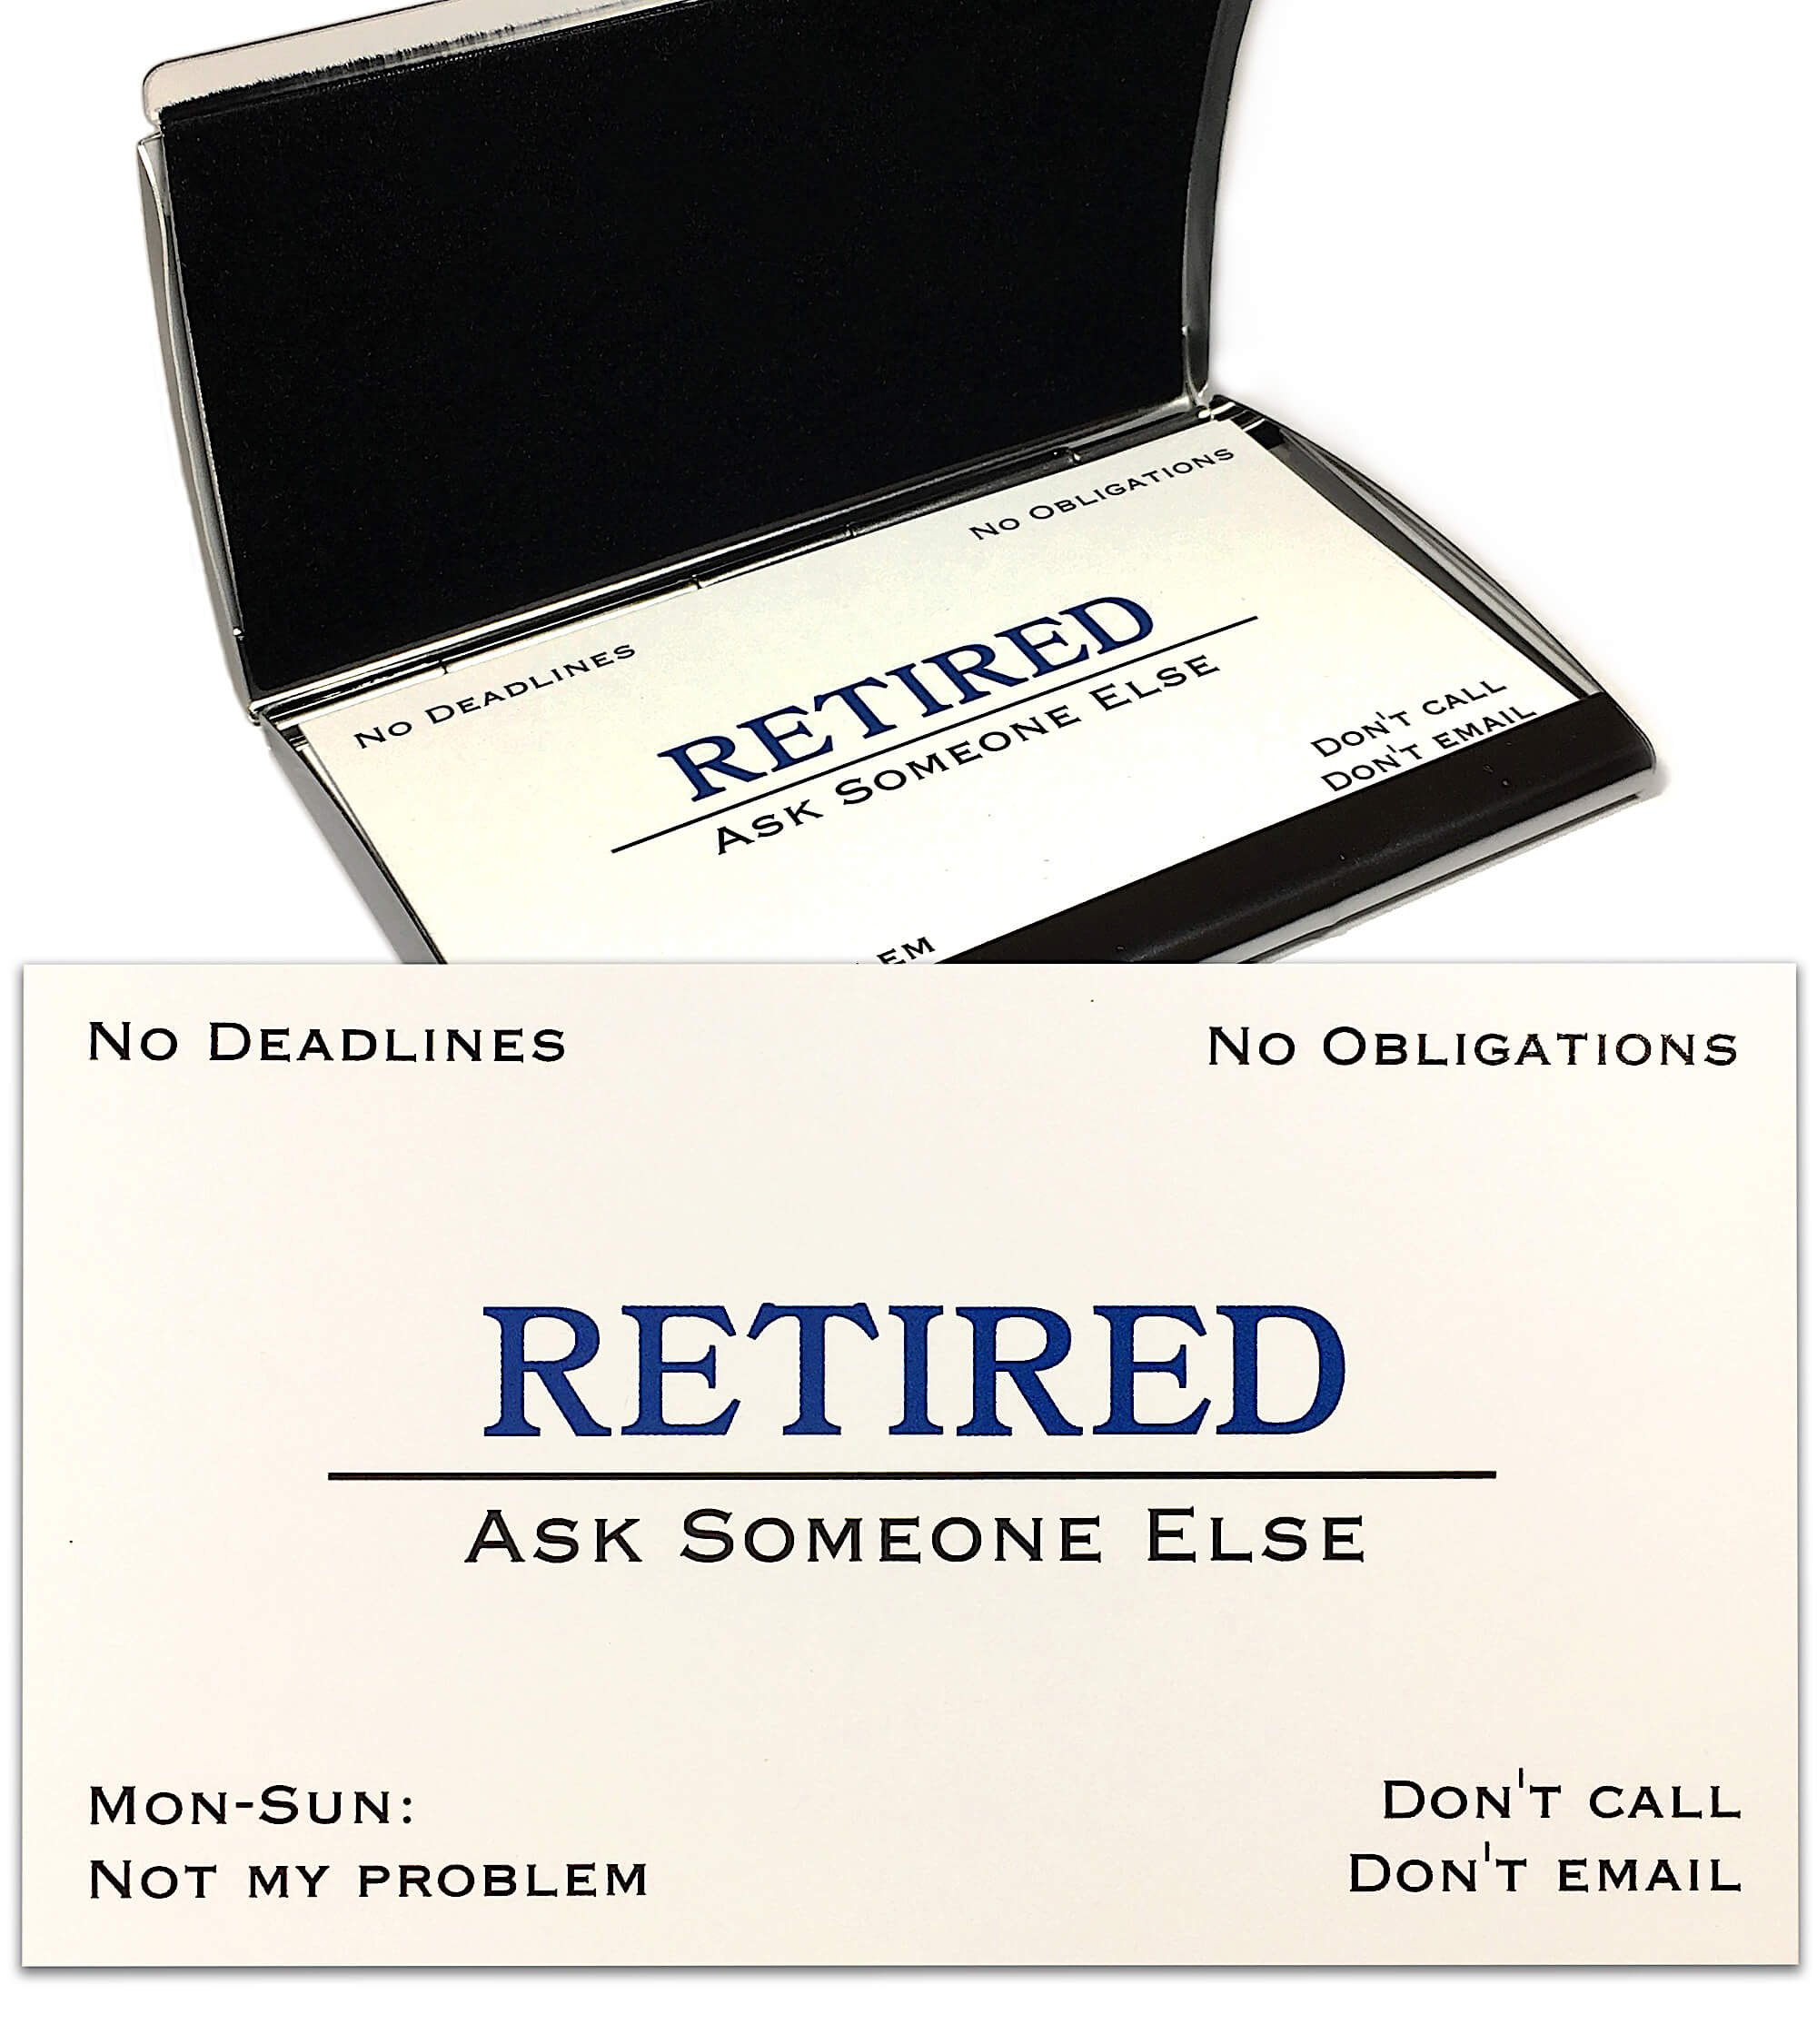 Thingamagift Out of Business Cards - Funny Retirement Gift - Cards With Stainless Steel Case For Retired Men, Women, Coworkers, Employees, Boss, Friend, Colleague